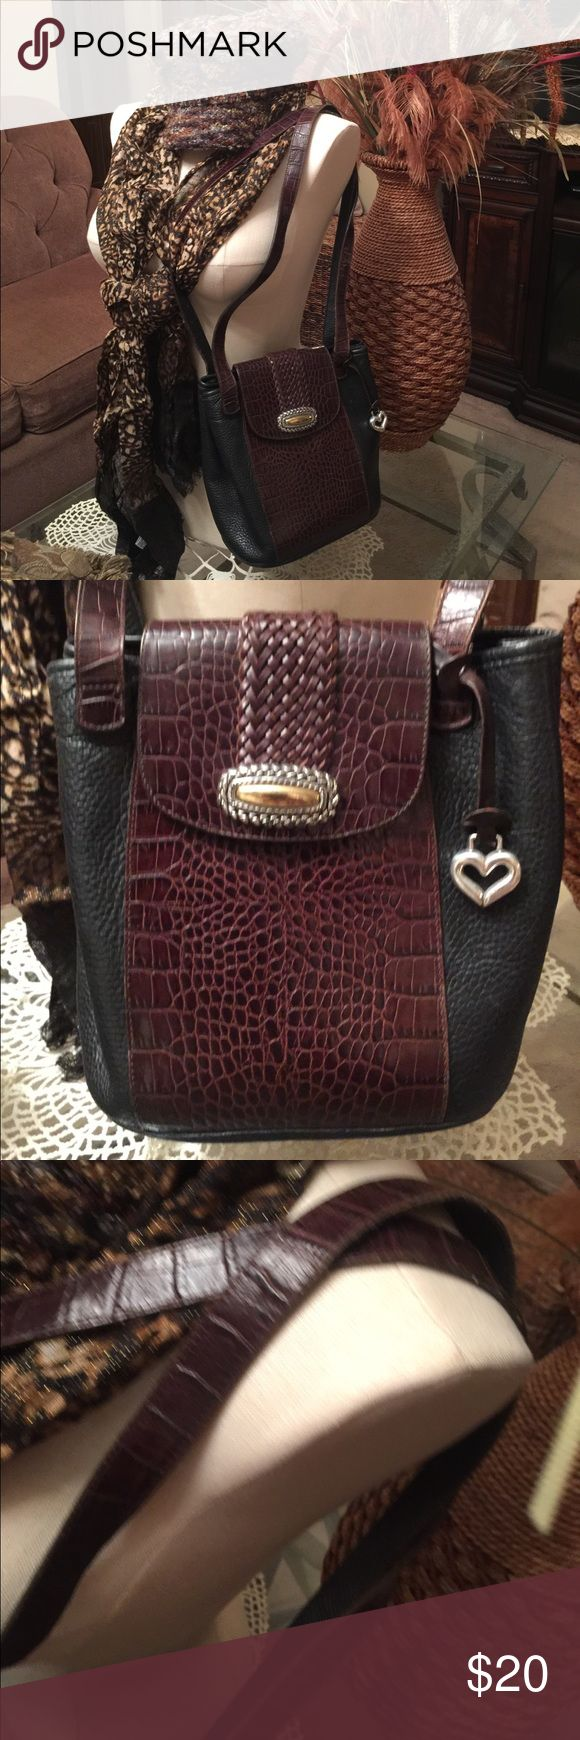 ✨Vintage Brighton Purse✨ 🔥🔥Priced to sell🔥🔥 Vintage Brighton Purse.  Clean, ornament on front closure shows slight tarnish.  Brown and Black.  Long should straps as seen in pictures.  Any questions please contact me.   Mild wear. Brighton Bags Hobos